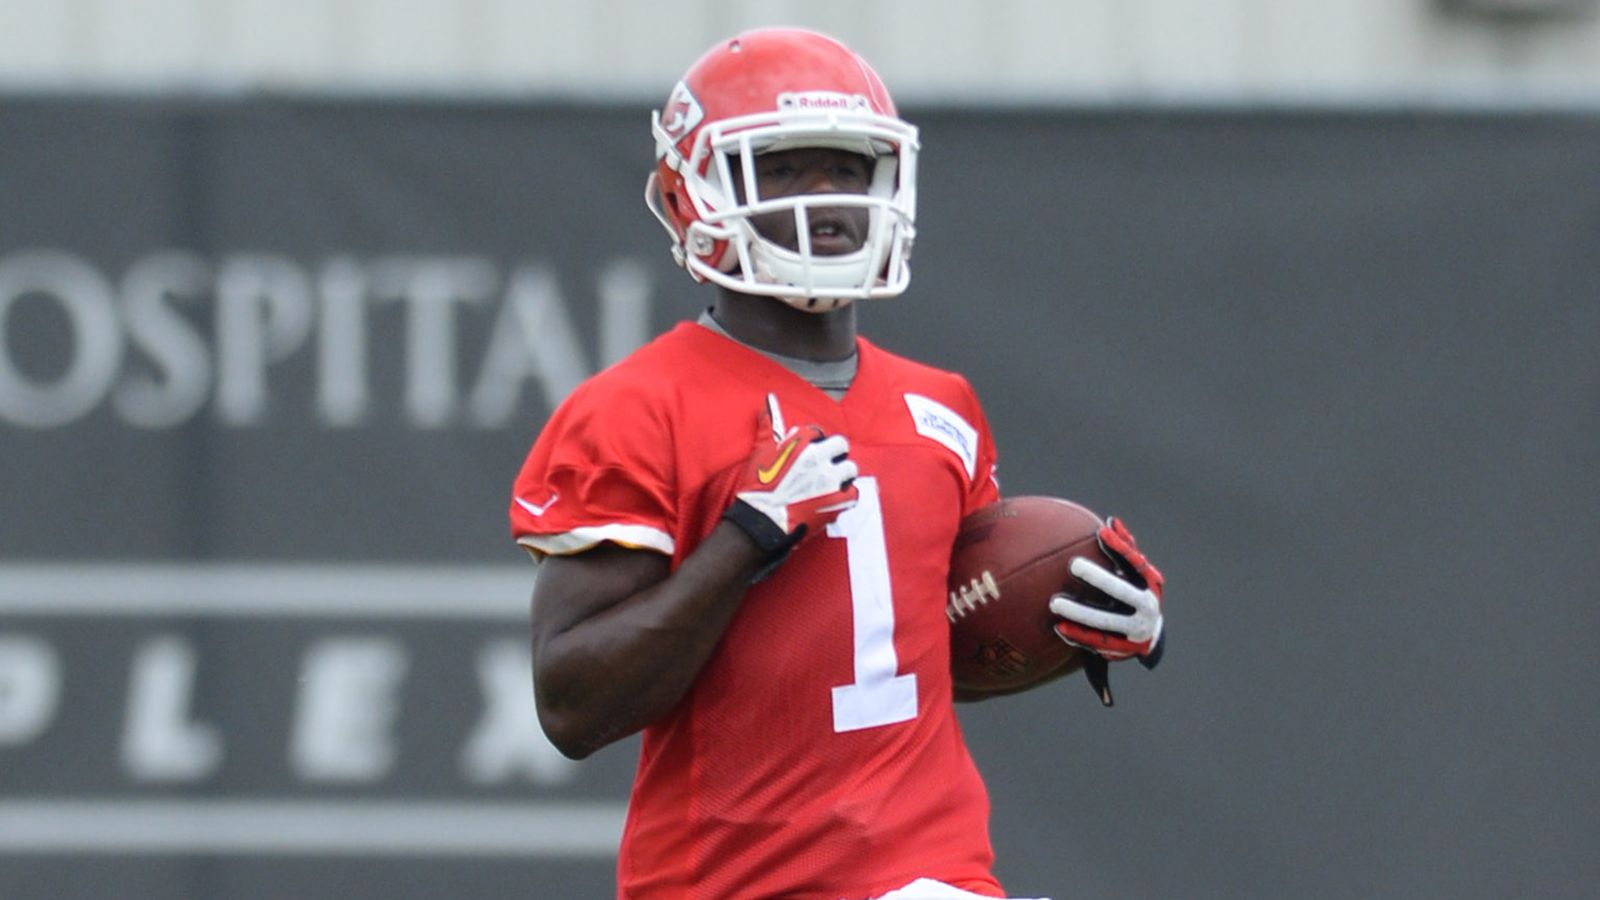 subs deanthony thomas - HD1200×800